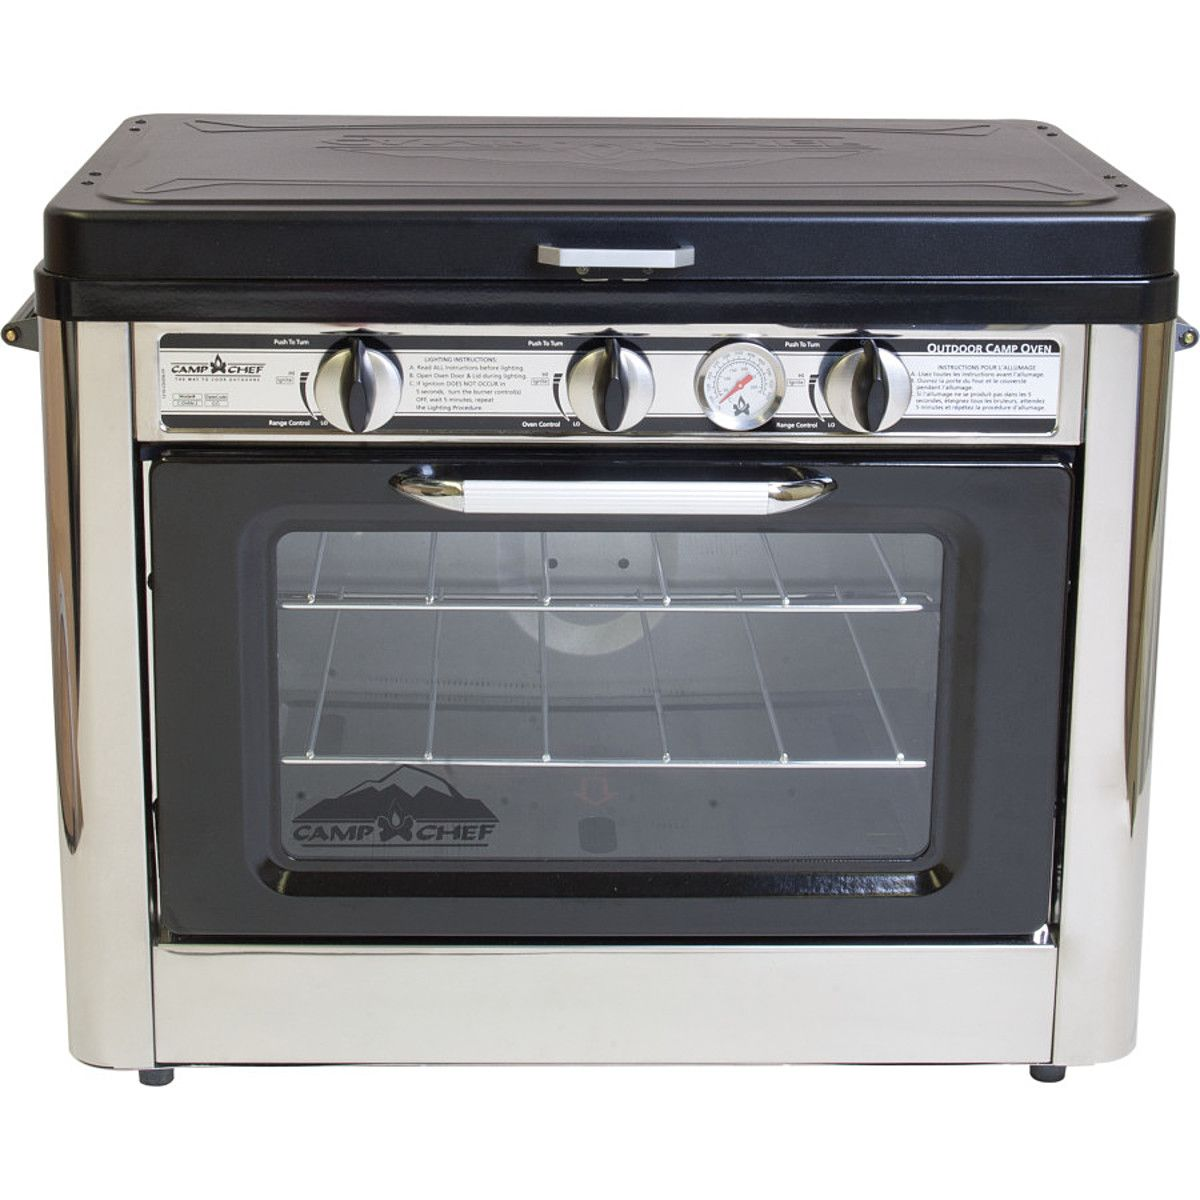 100 Camp Stove Recipes On Pinterest: Camp Chef - Deluxe Outdoor Camp Oven - One Color